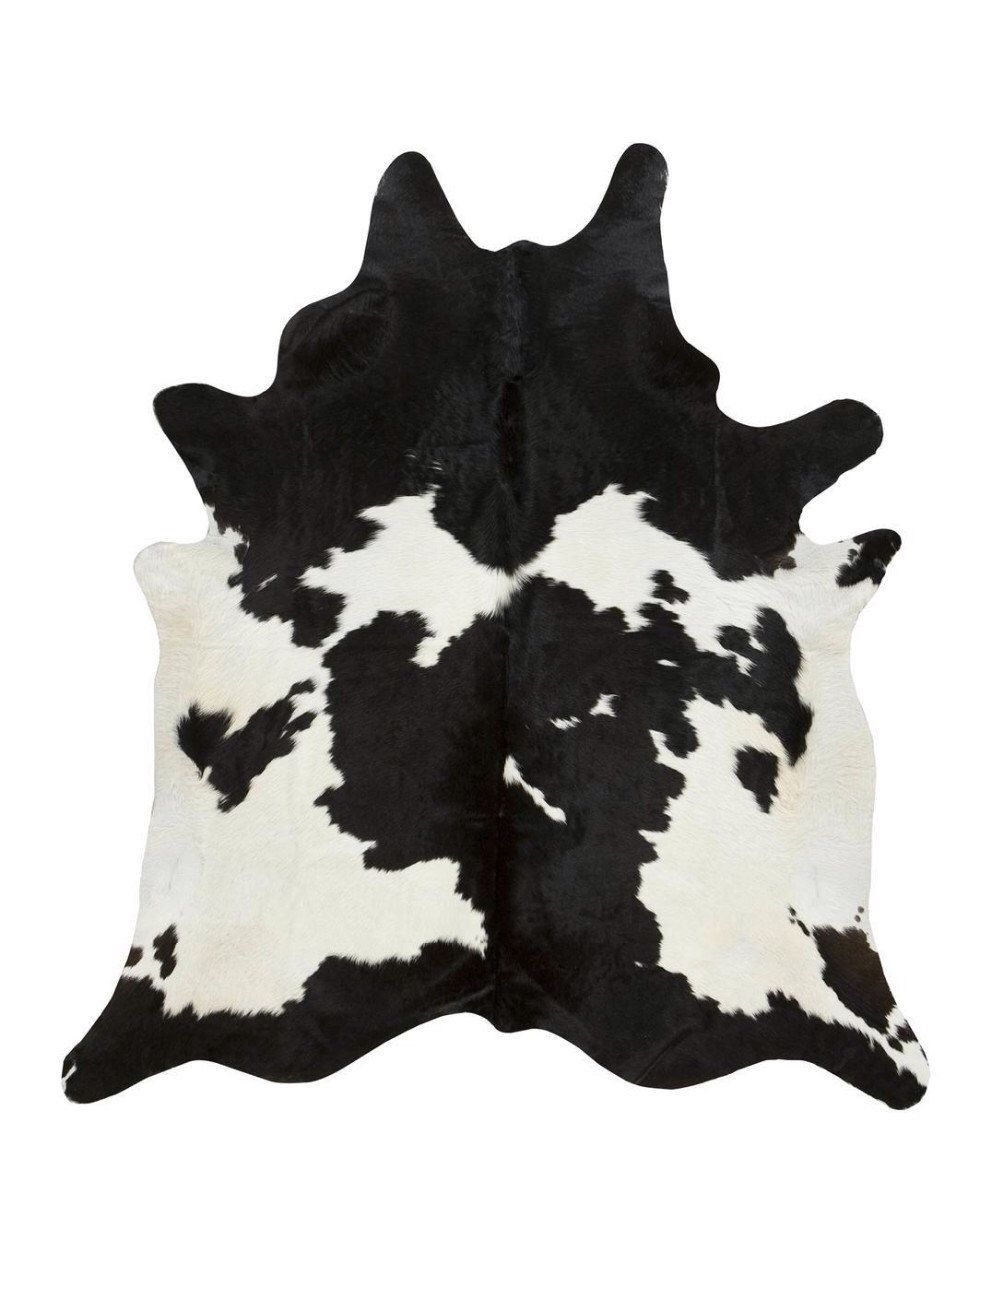 Big Customized Fur Rug With Original Color And Natural Shape Rugs Charpet Leather Cow White Cowhide Rug Black White Cowhide Rug Cow Hide Rug